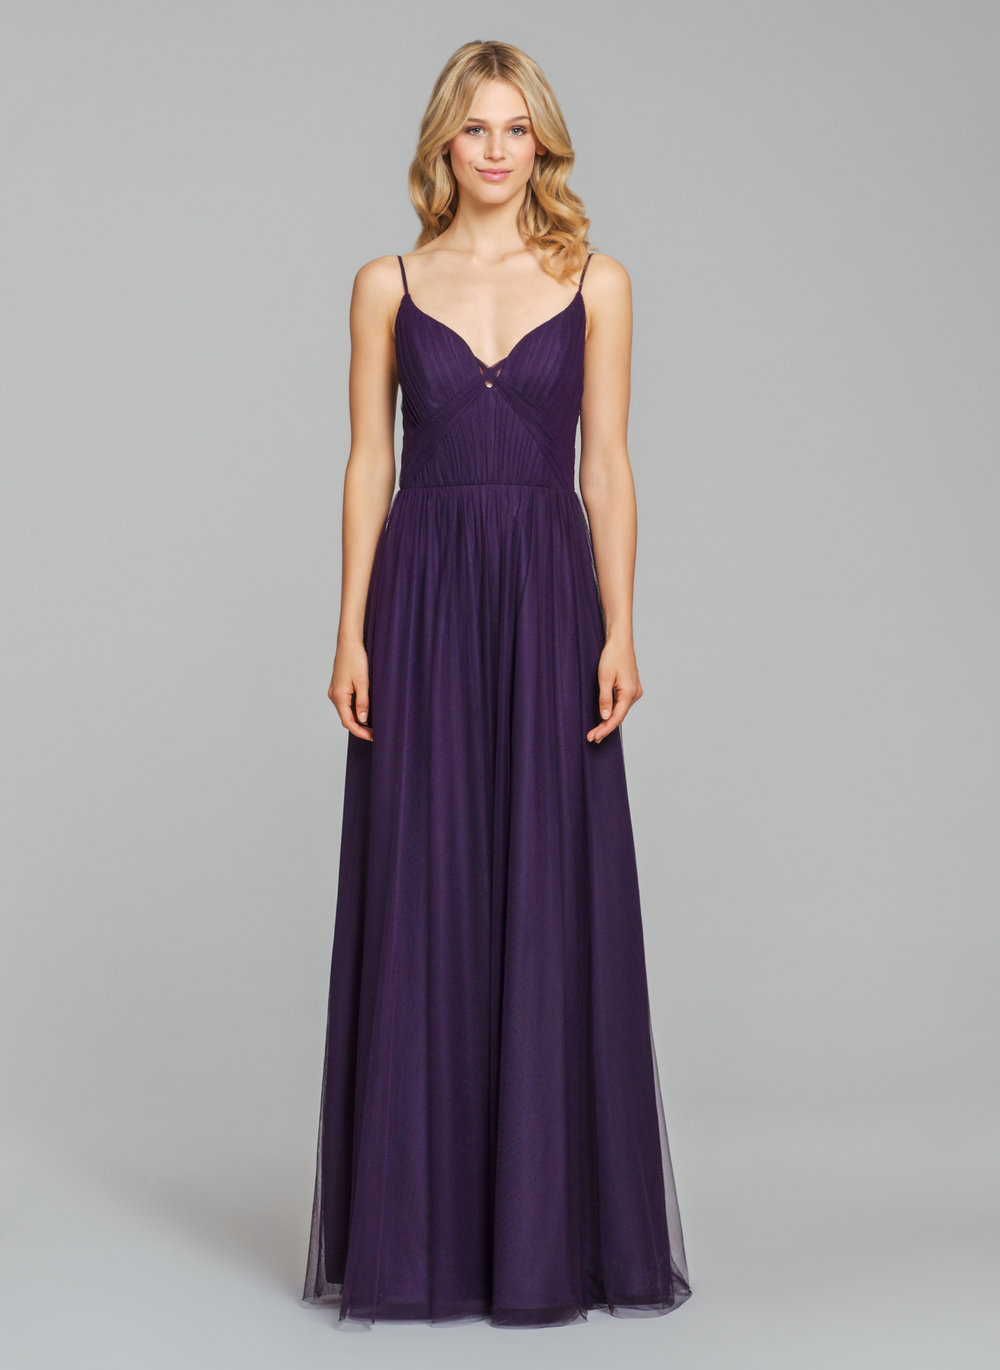 hayley-paige-occasions-bridesmaids-fall-2018-style-5859.jpg